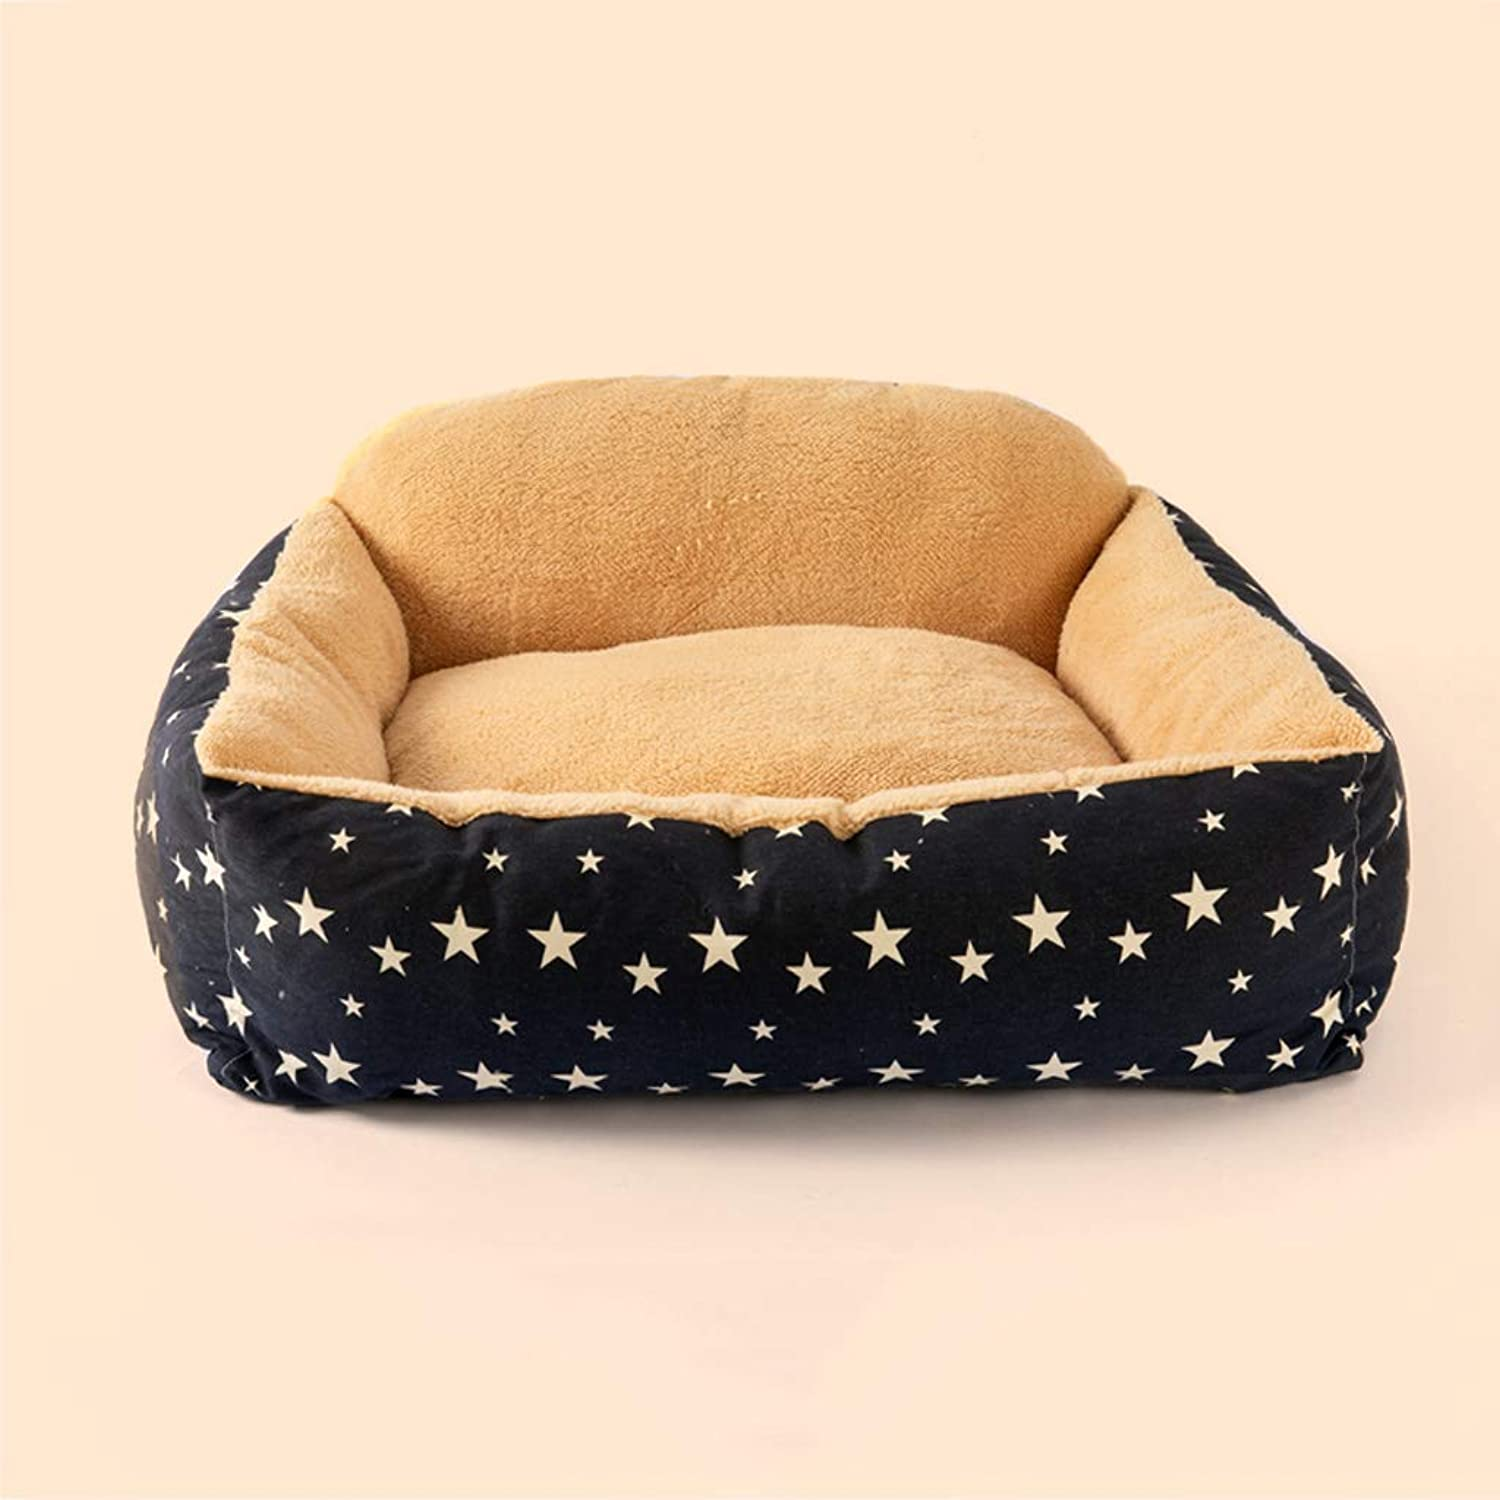 Kennel removable and washable four seasons universal pet mat large mediumsized small dog pet cat mat winter warm60  50  22cm